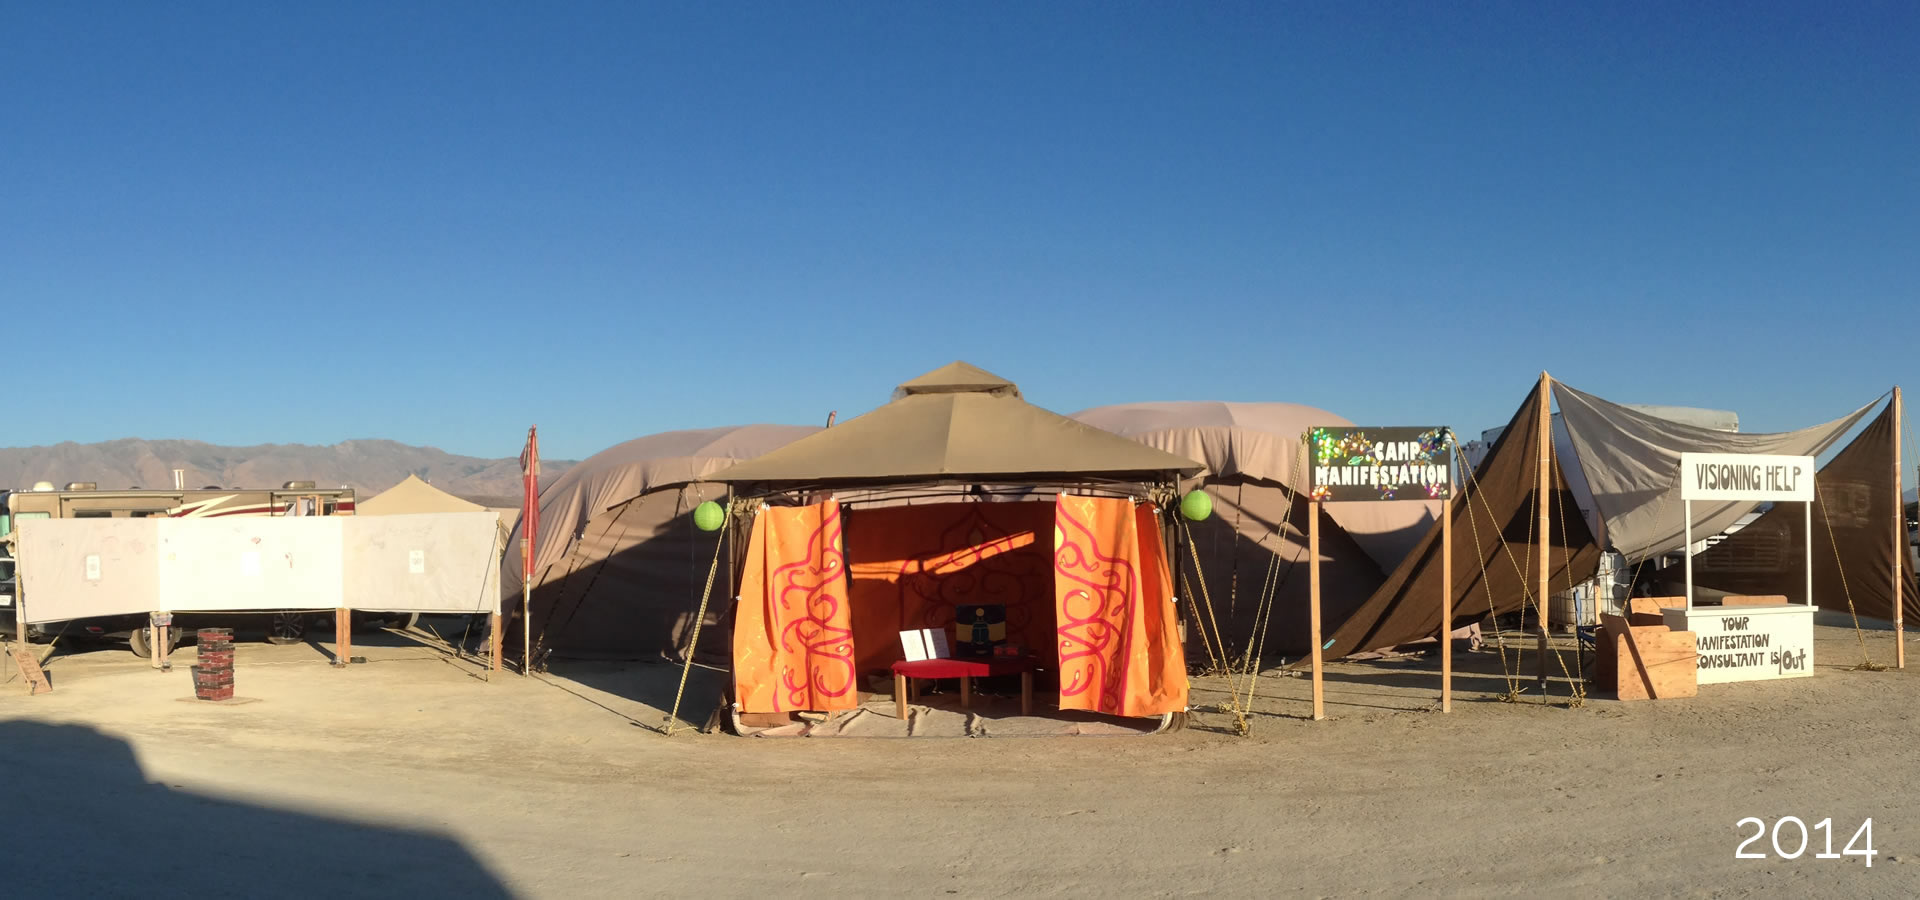 Camp Manifestation - 2014